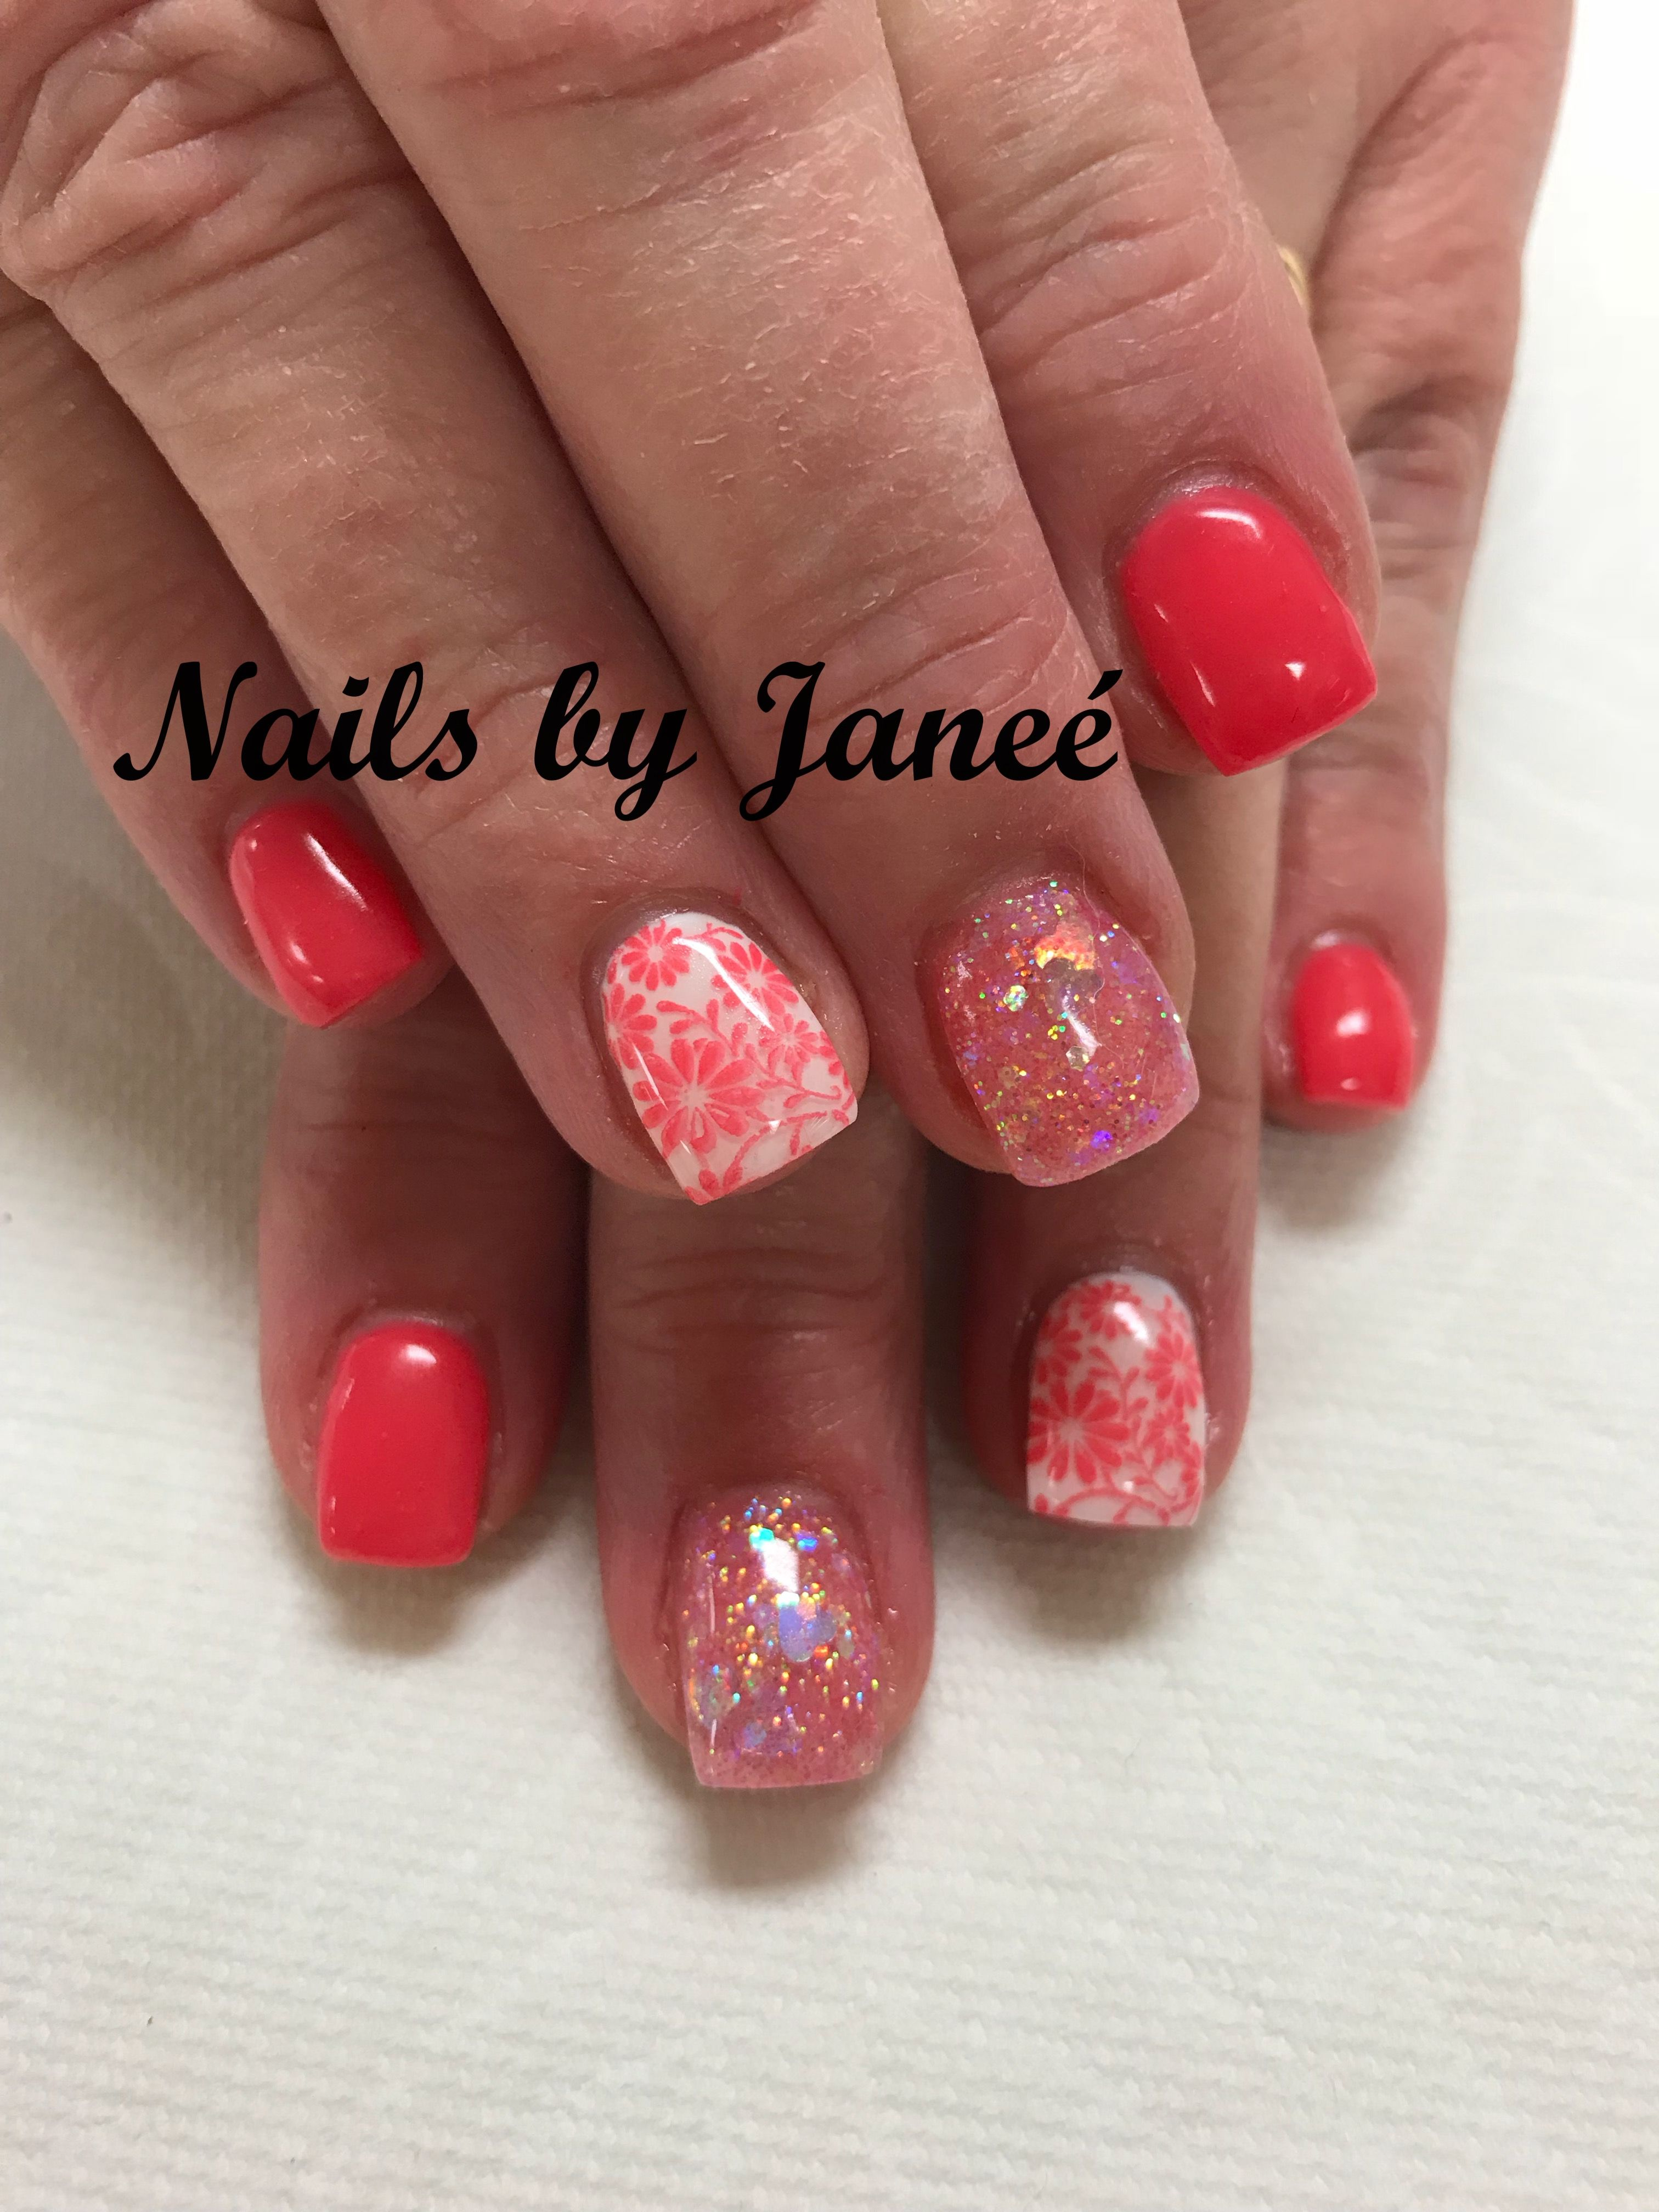 Nails by Janeé | Nails by Janee at A Wild Hair Salon Reno, NV ...